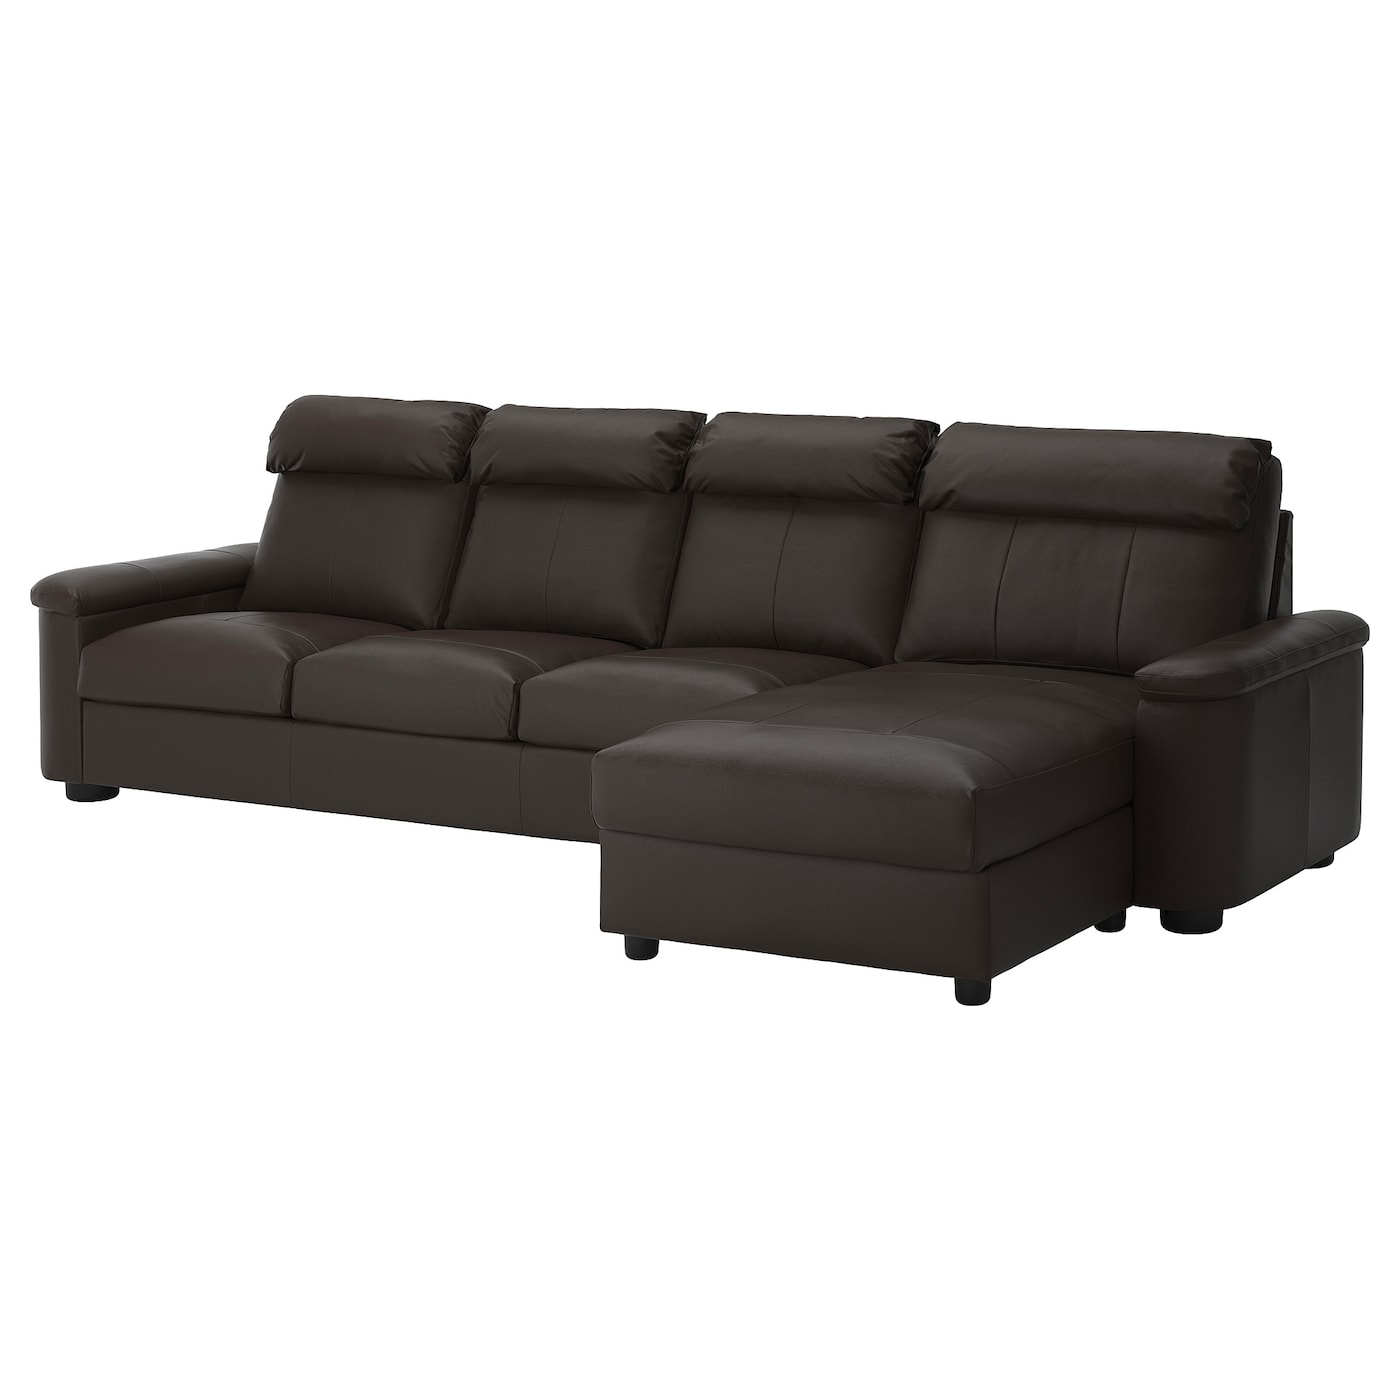 IKEA LIDHULT 4-seat sofa 10 year guarantee. Read about the terms in the guarantee brochure.